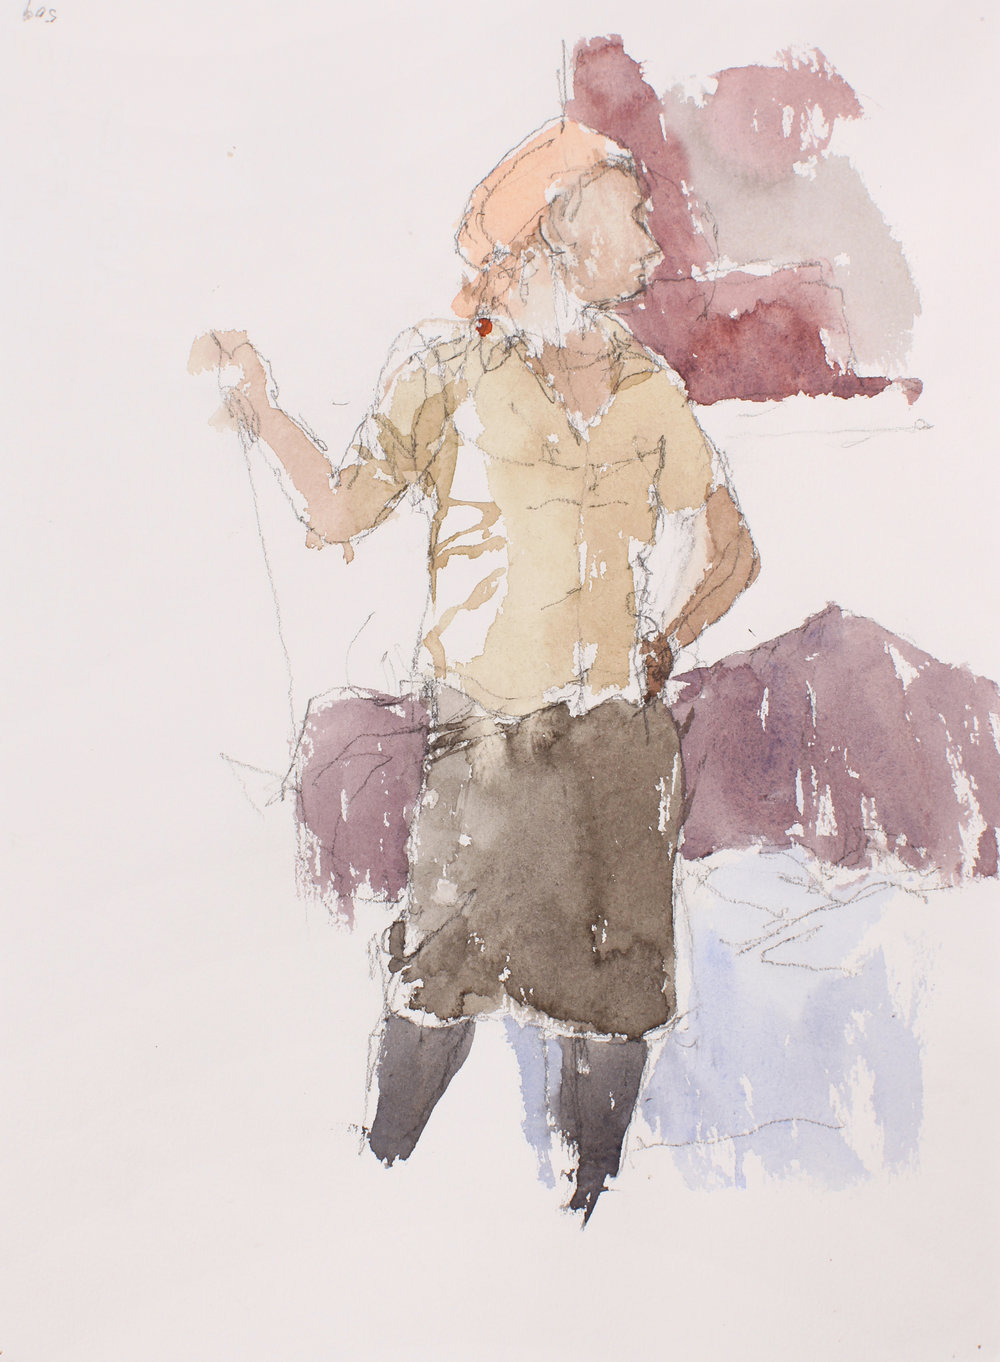 2006_Woman_Standing_in_Studio_watercolour_and_pencil_on_paper_15x11in_WPF085.jpg